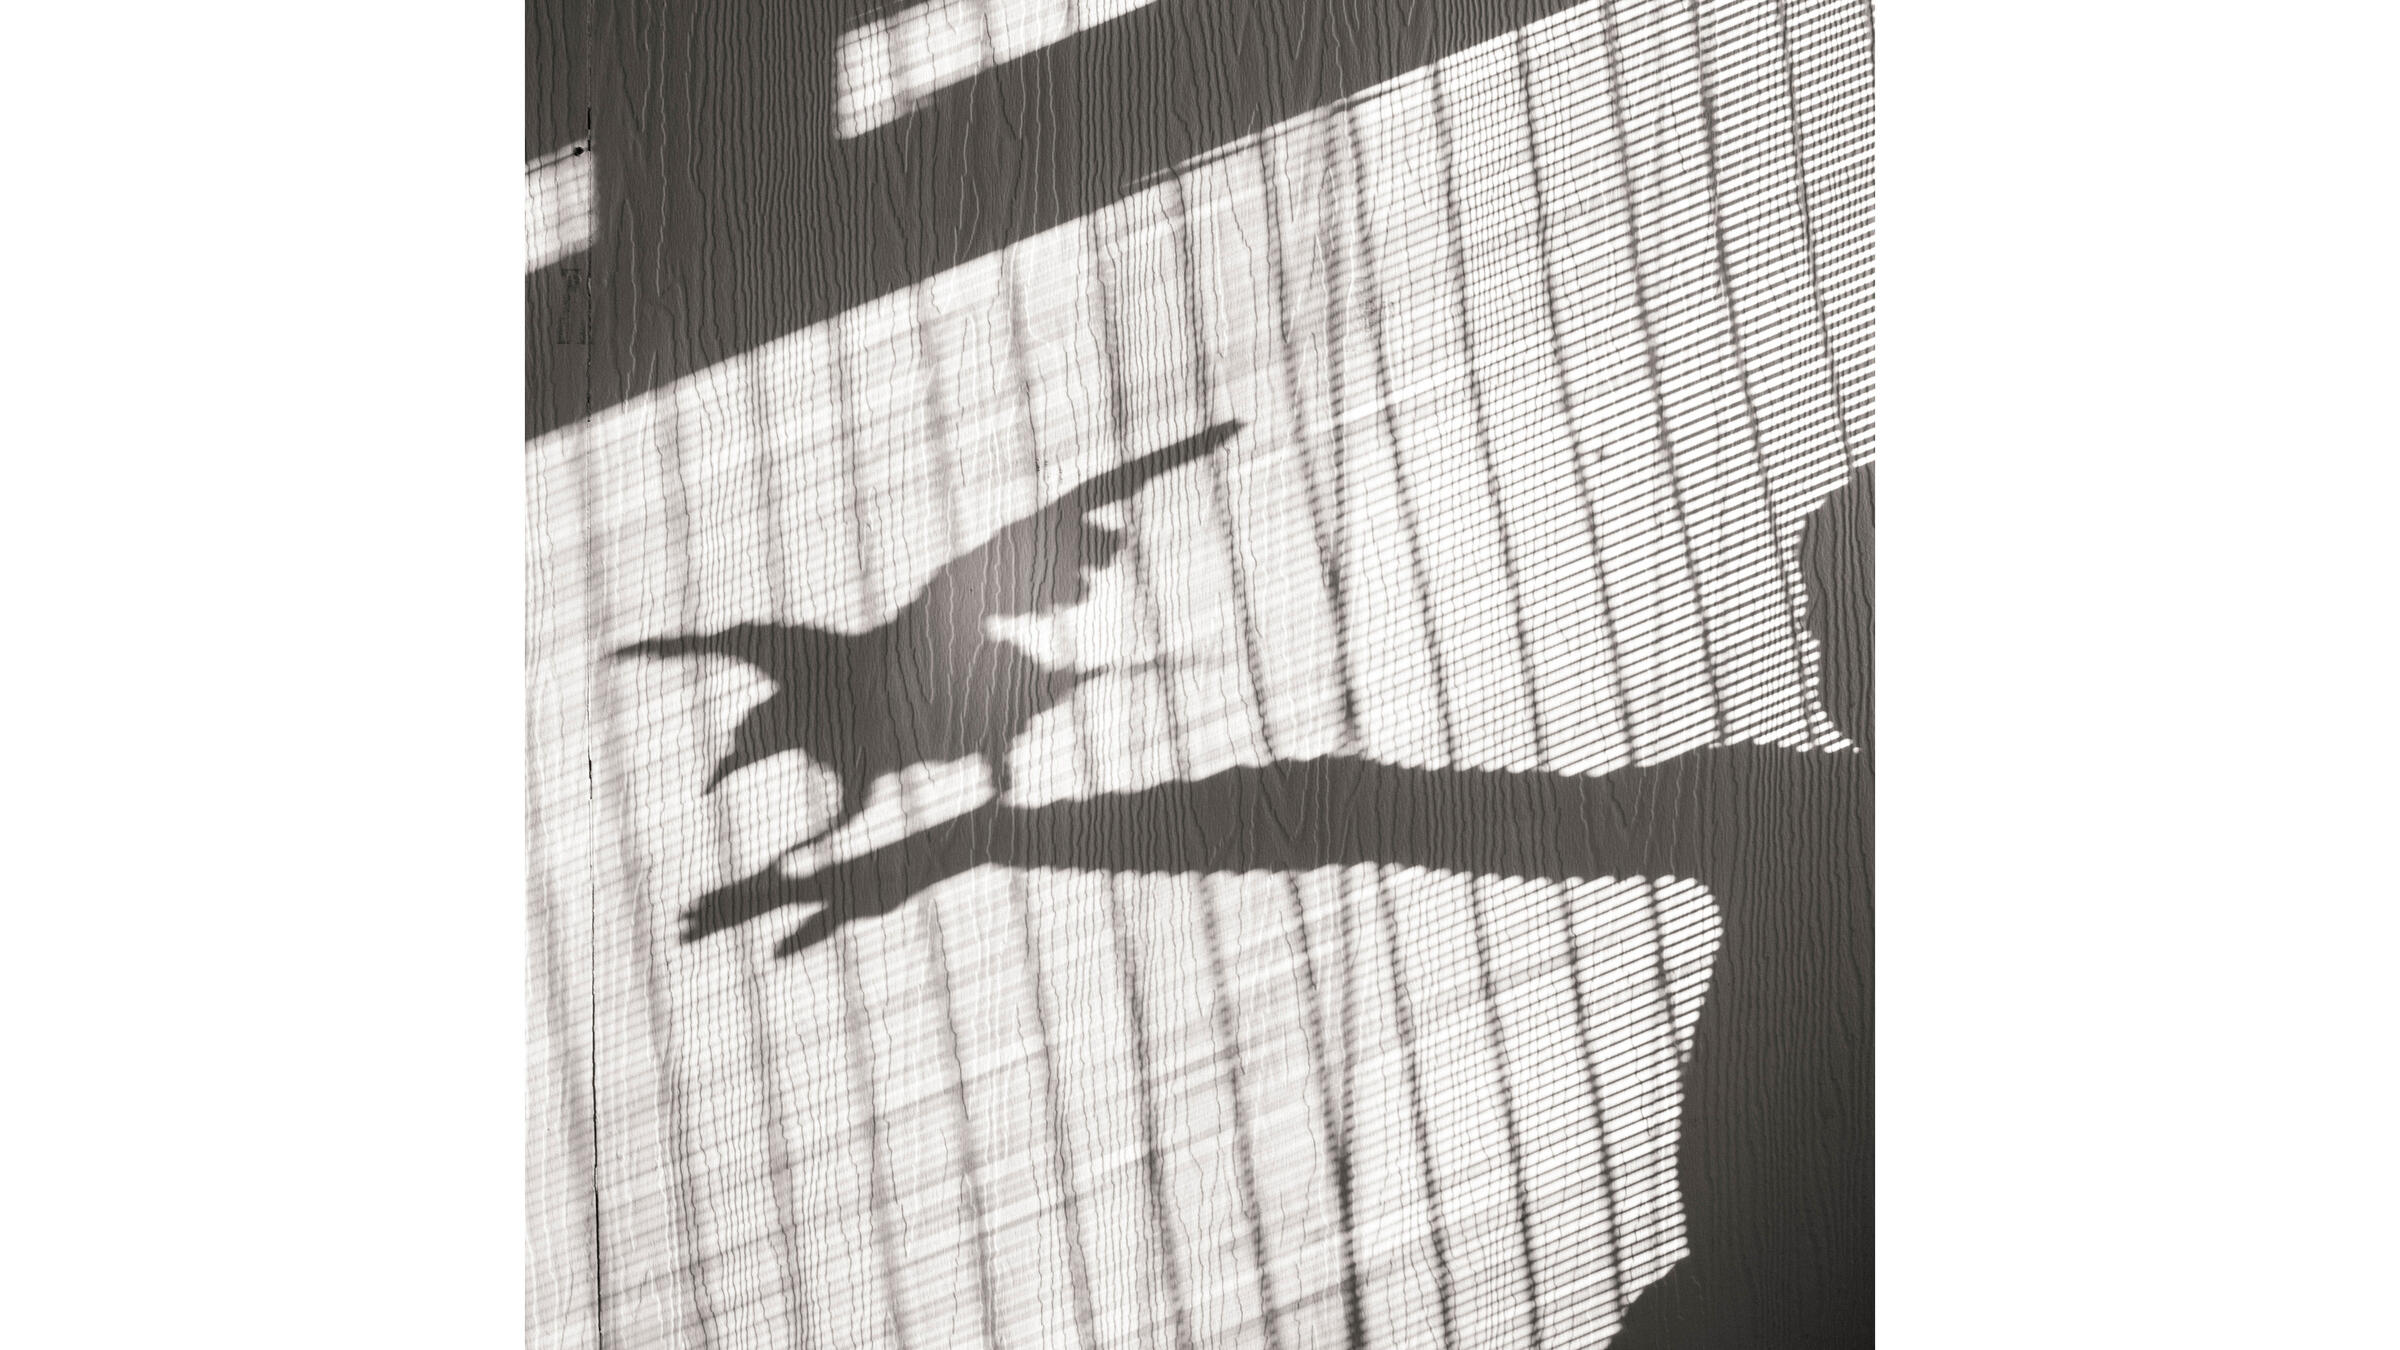 Morning shadows with Roo. Cameron Bloom